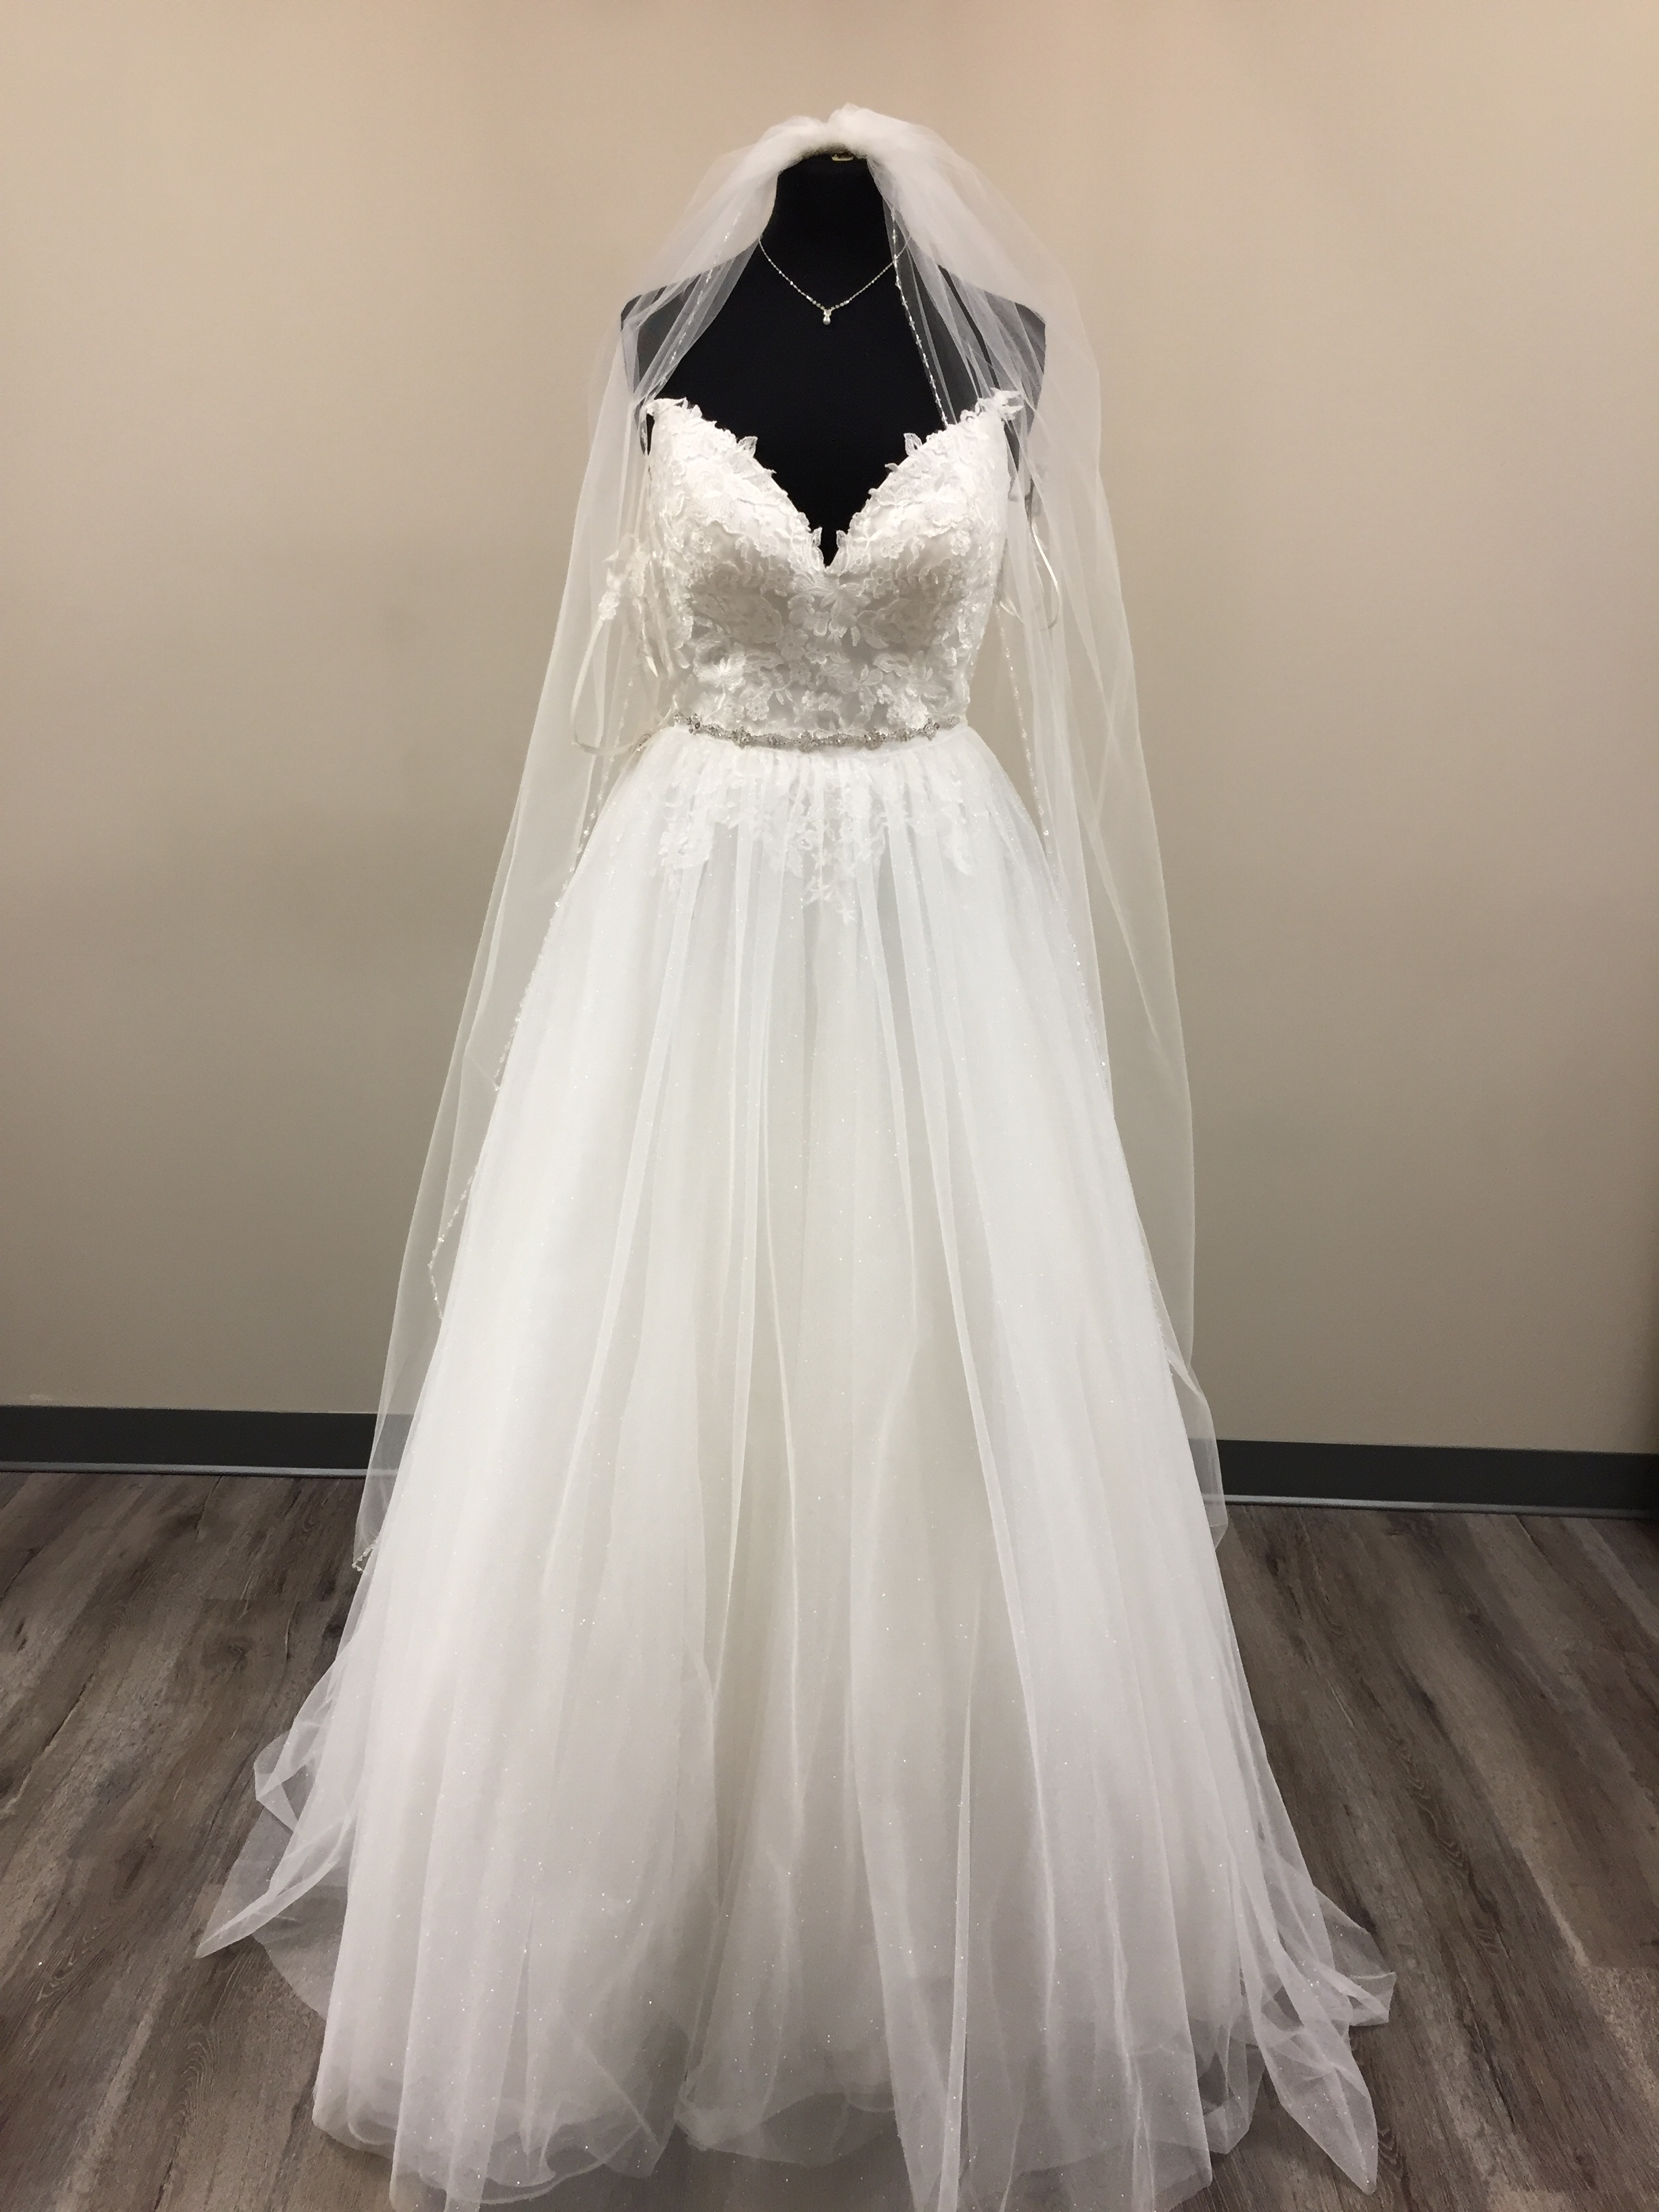 A-Line dress here at Once Upon A Time Weddings.